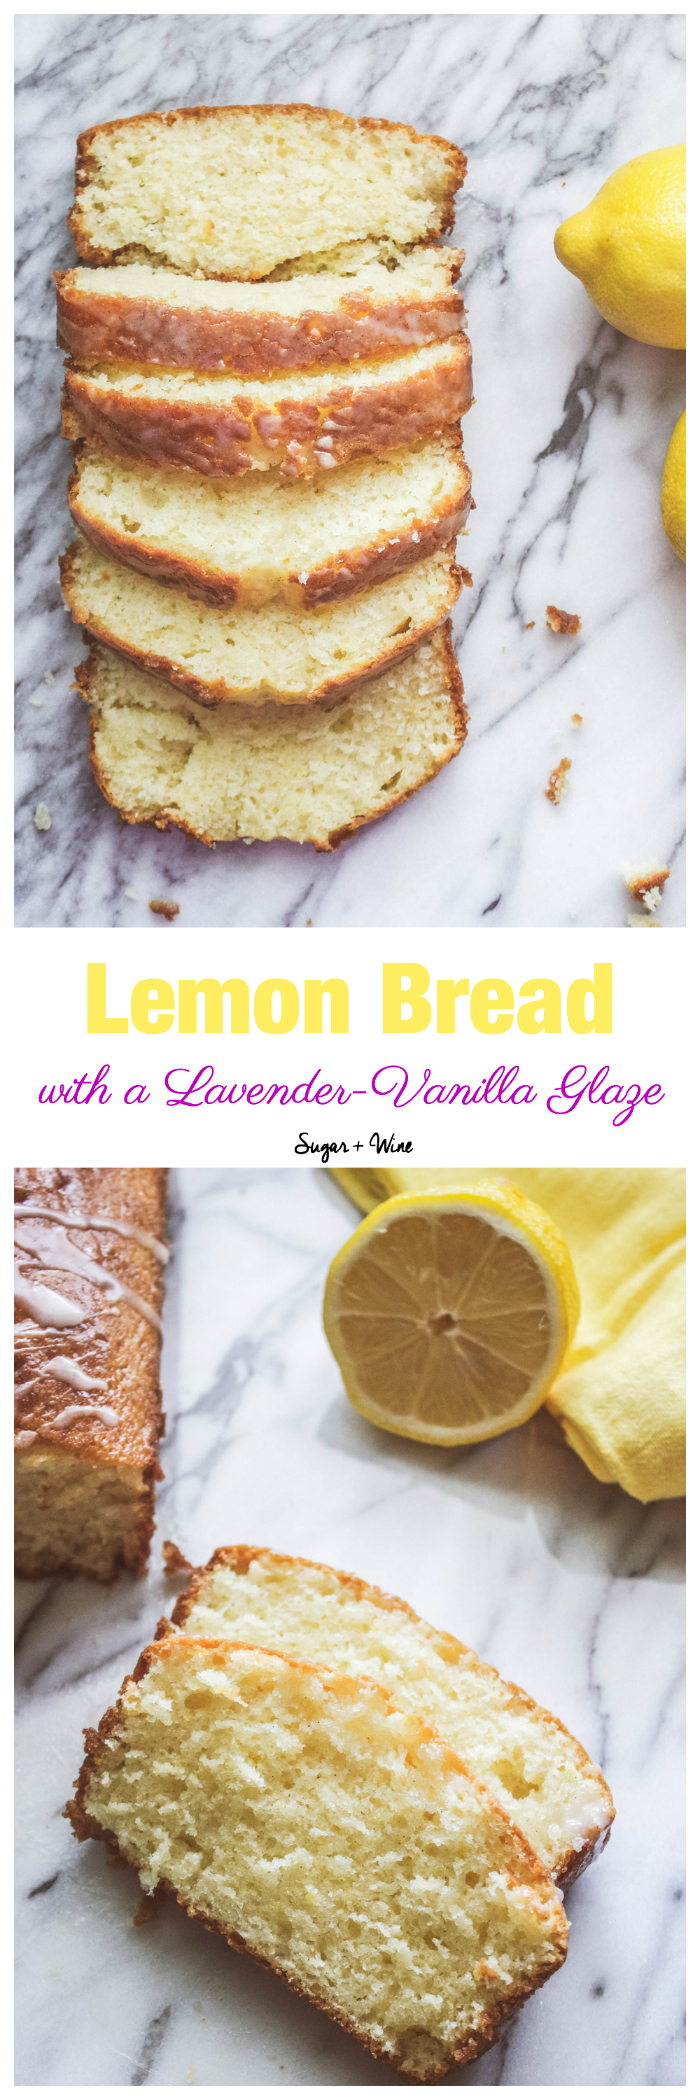 Whether you are looking for a spring treat or a Mother's Day dessert, this Lemon Bread with Lavender-Vanilla Glaze will curb any spring craving and wow your guests!